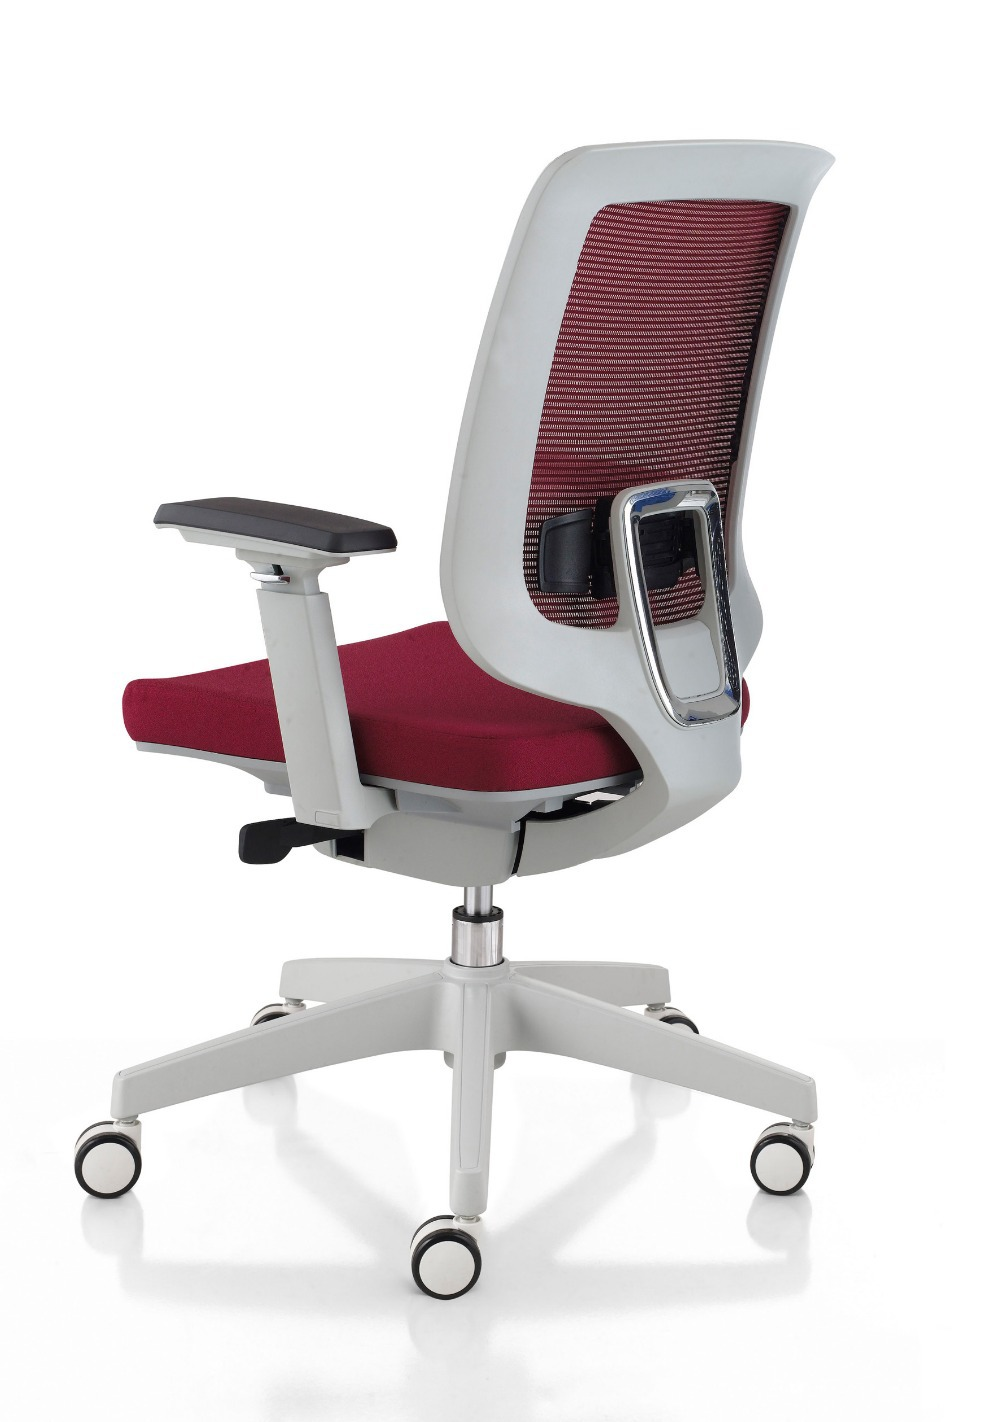 Chair Price Us 110 Heavy Duty Casters Office Chair Office Rolling Chair Price Office Chair Back Support Cushion In Office Chairs From Furniture On